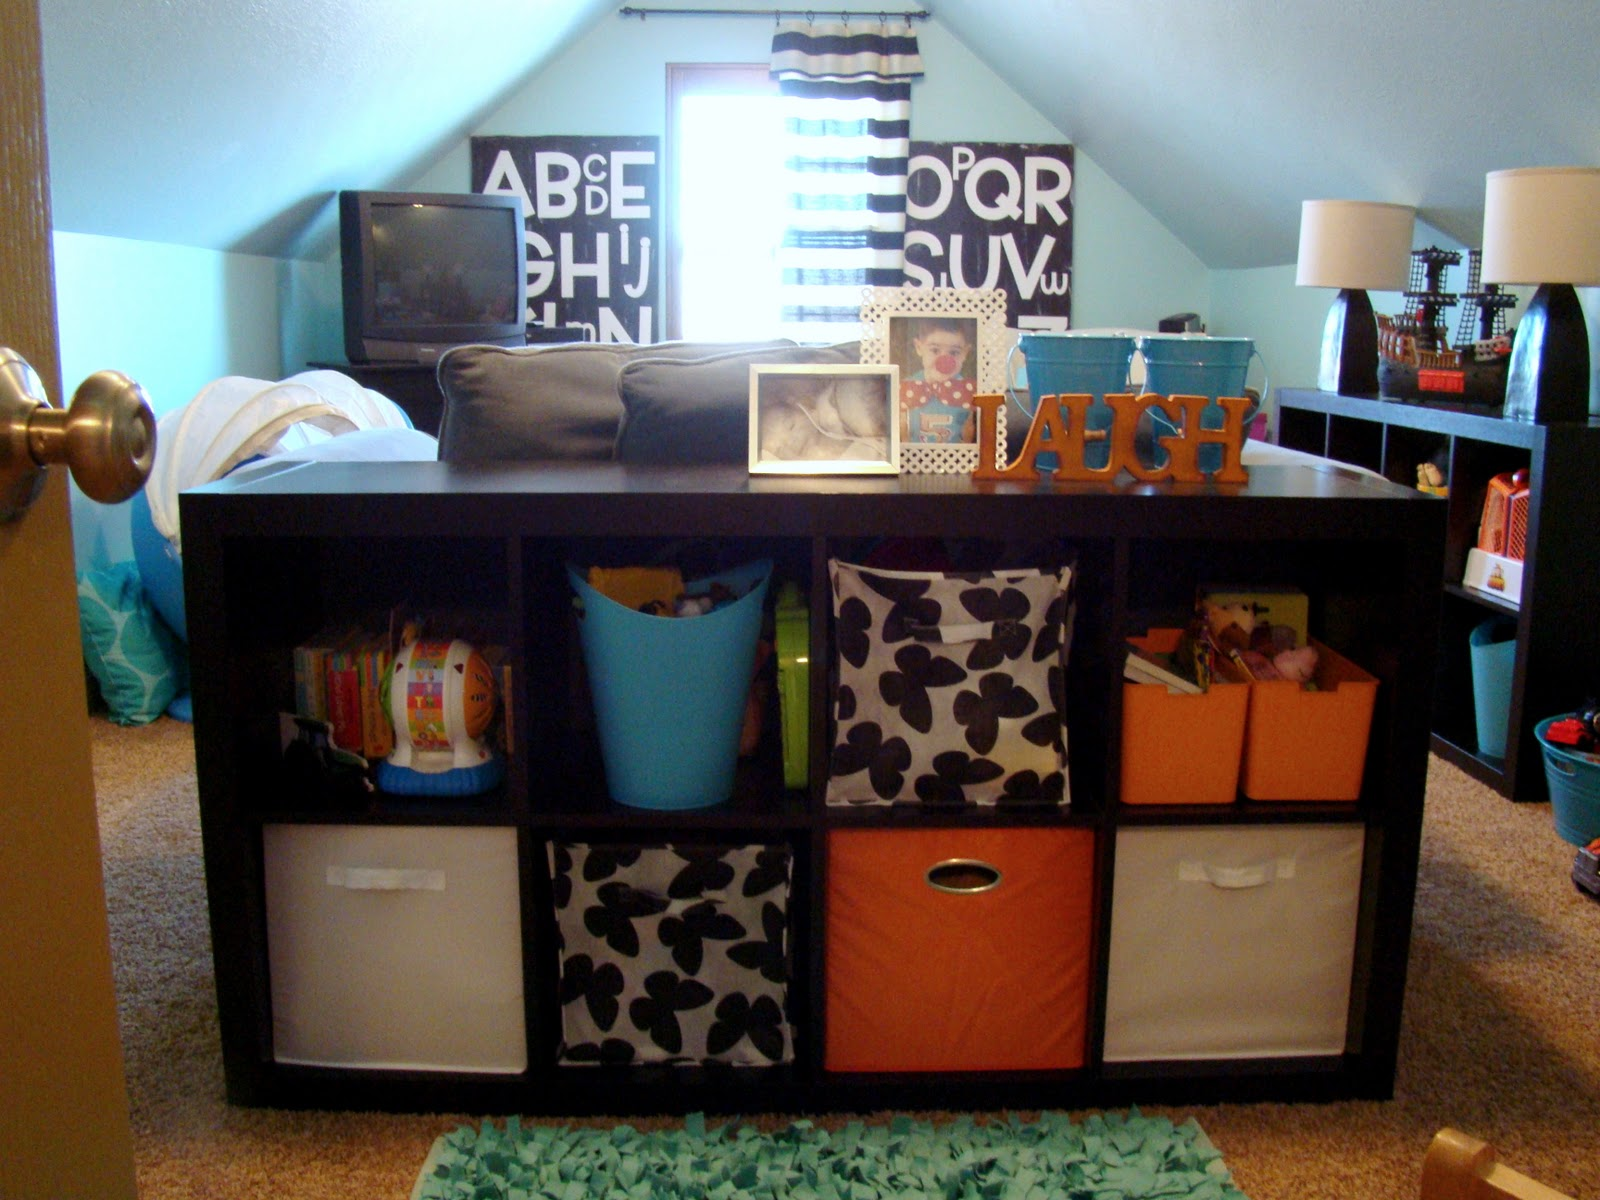 Playroom: THe FiCkLe PiCkLe: Our PLaYrOoM